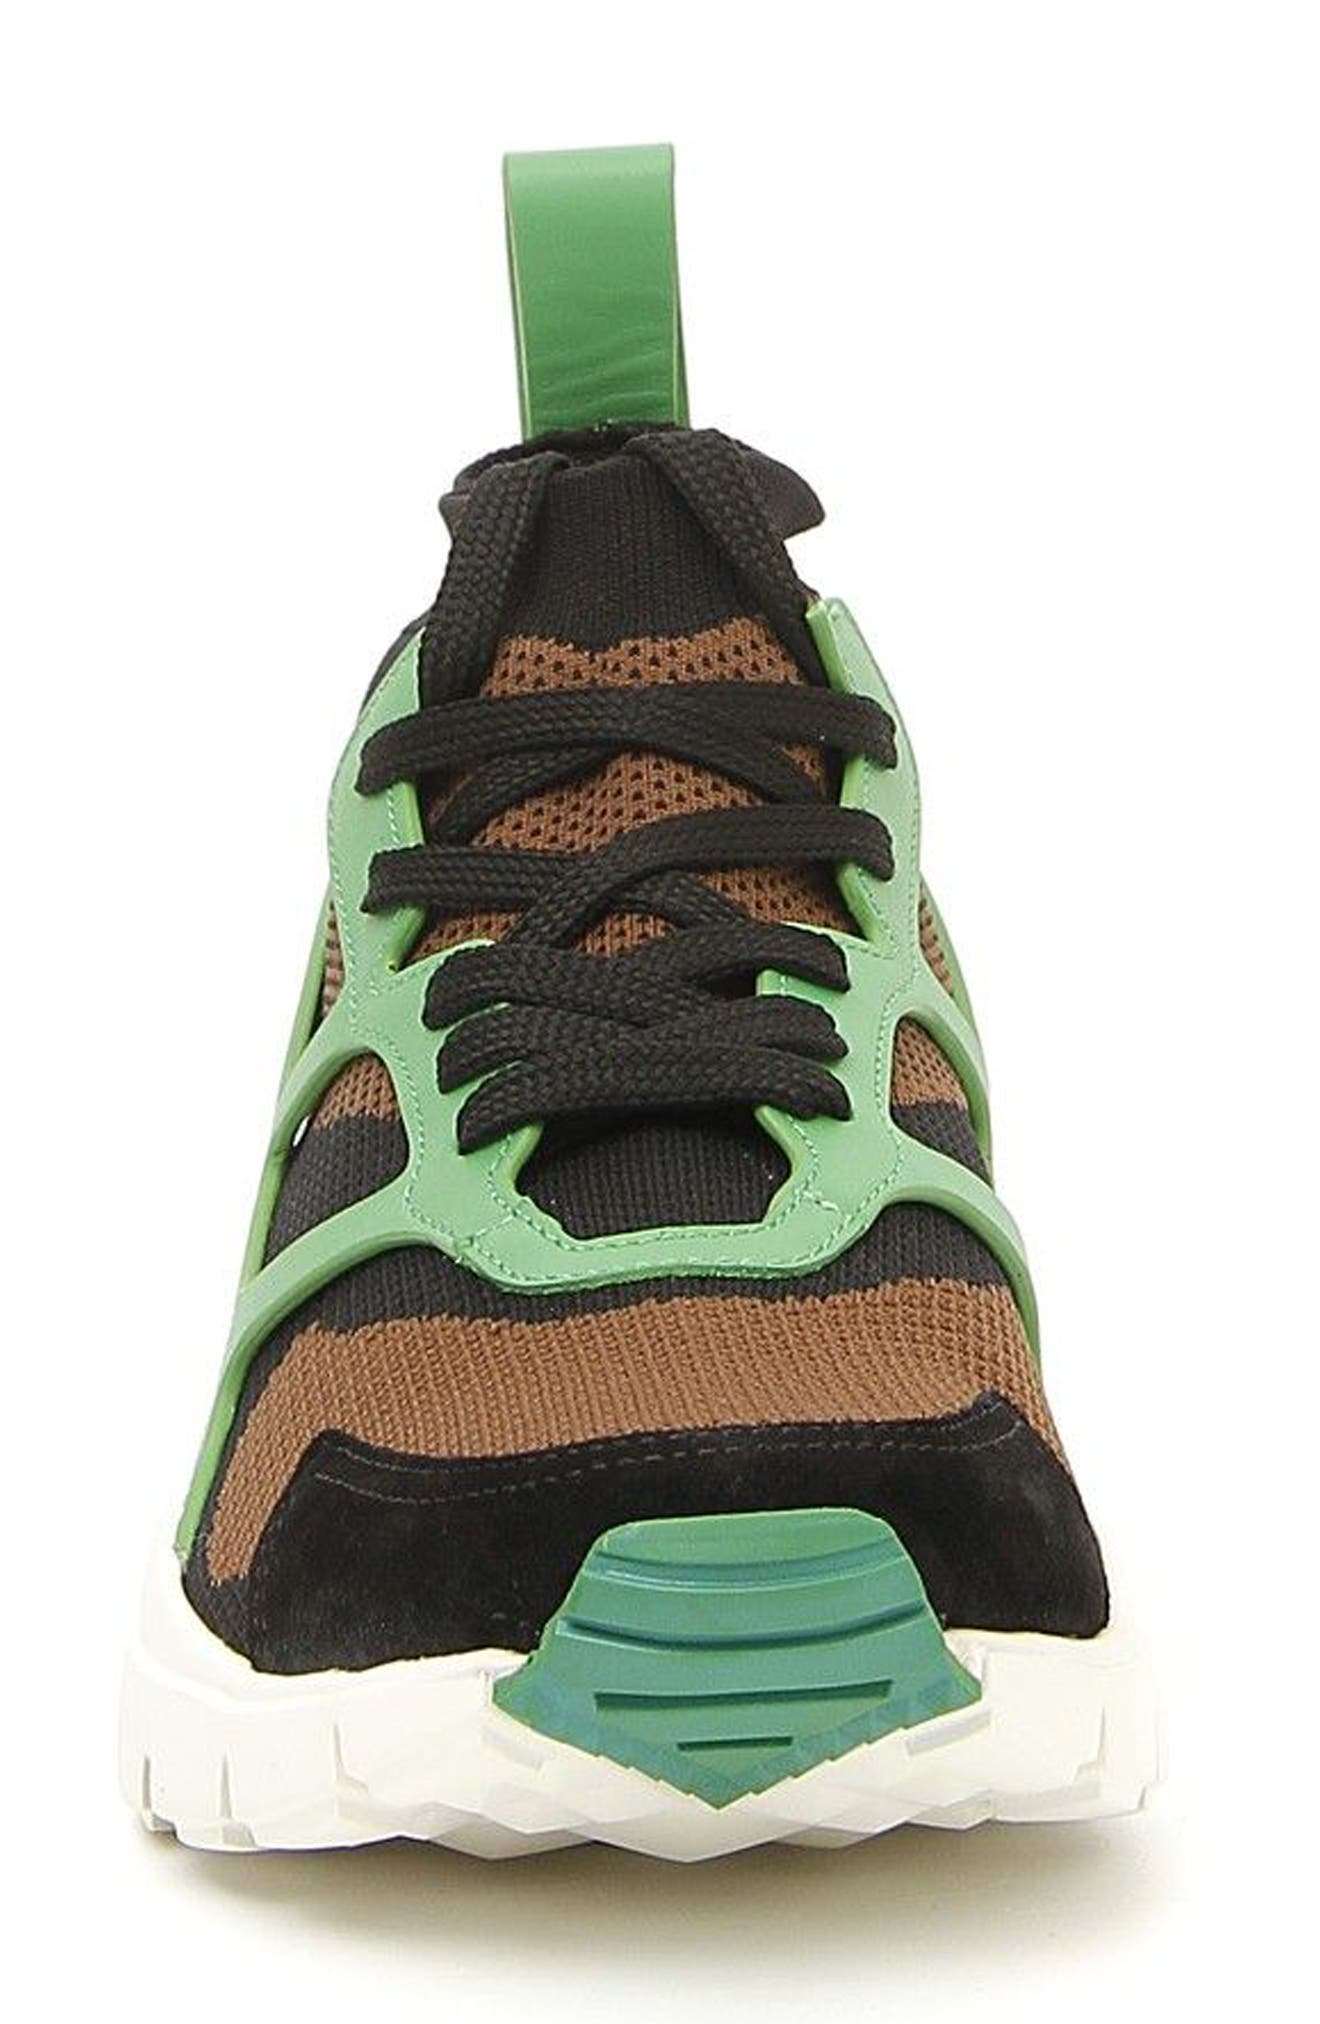 Sound High Sneaker,                             Alternate thumbnail 3, color,                             Army Green/ Nero/ Green